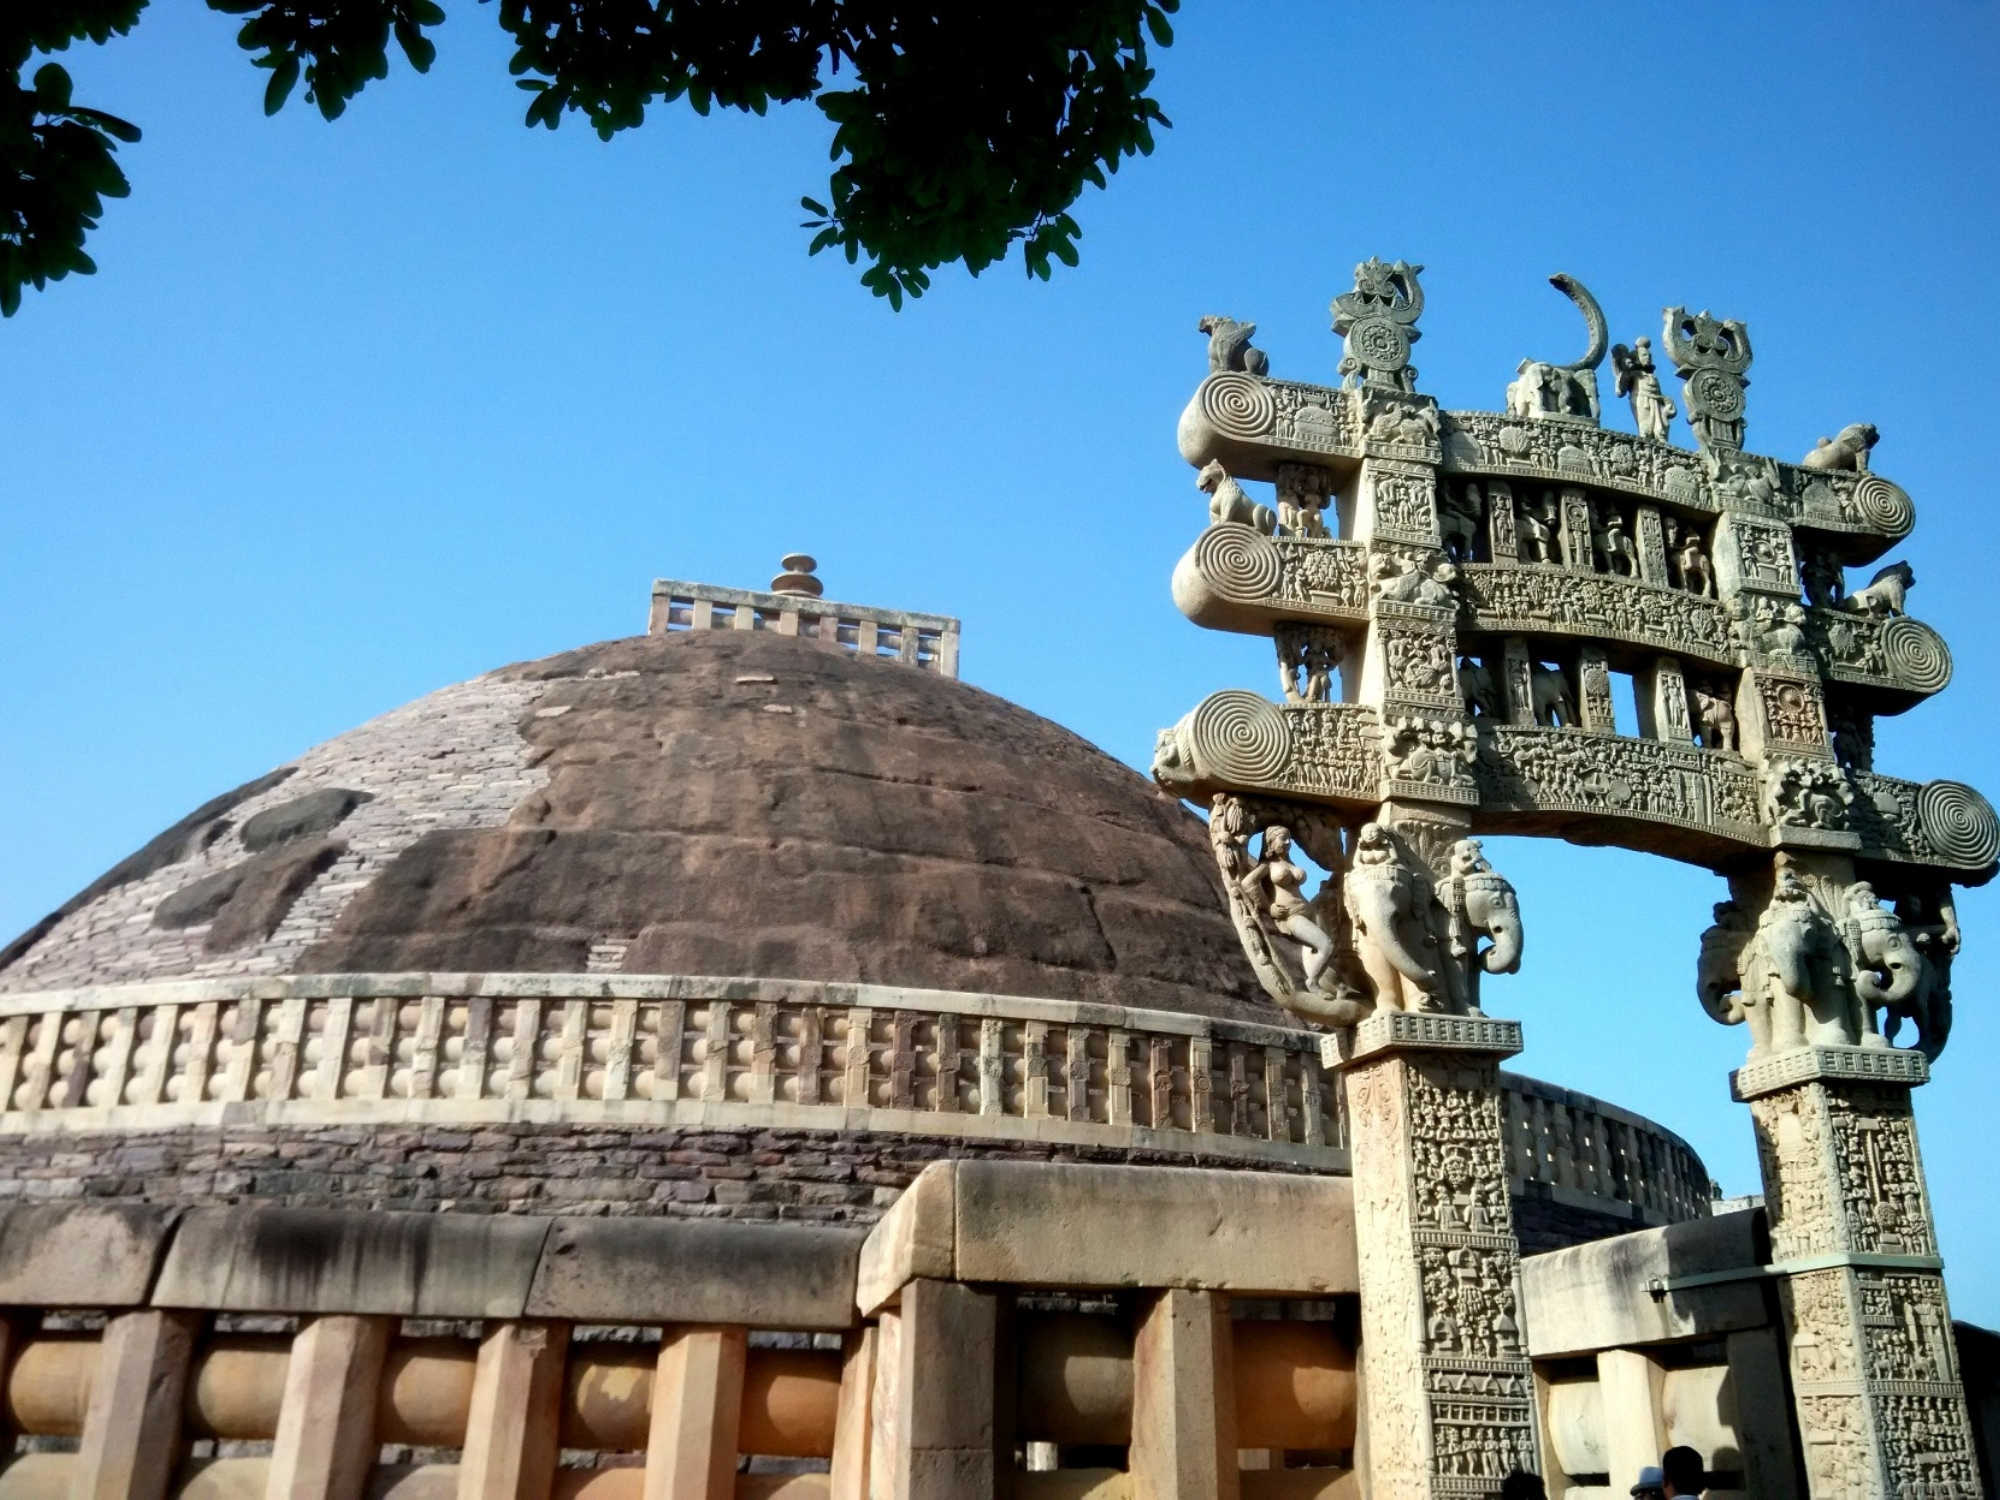 Why should I visit Sanchi in Madhya Pradesh?